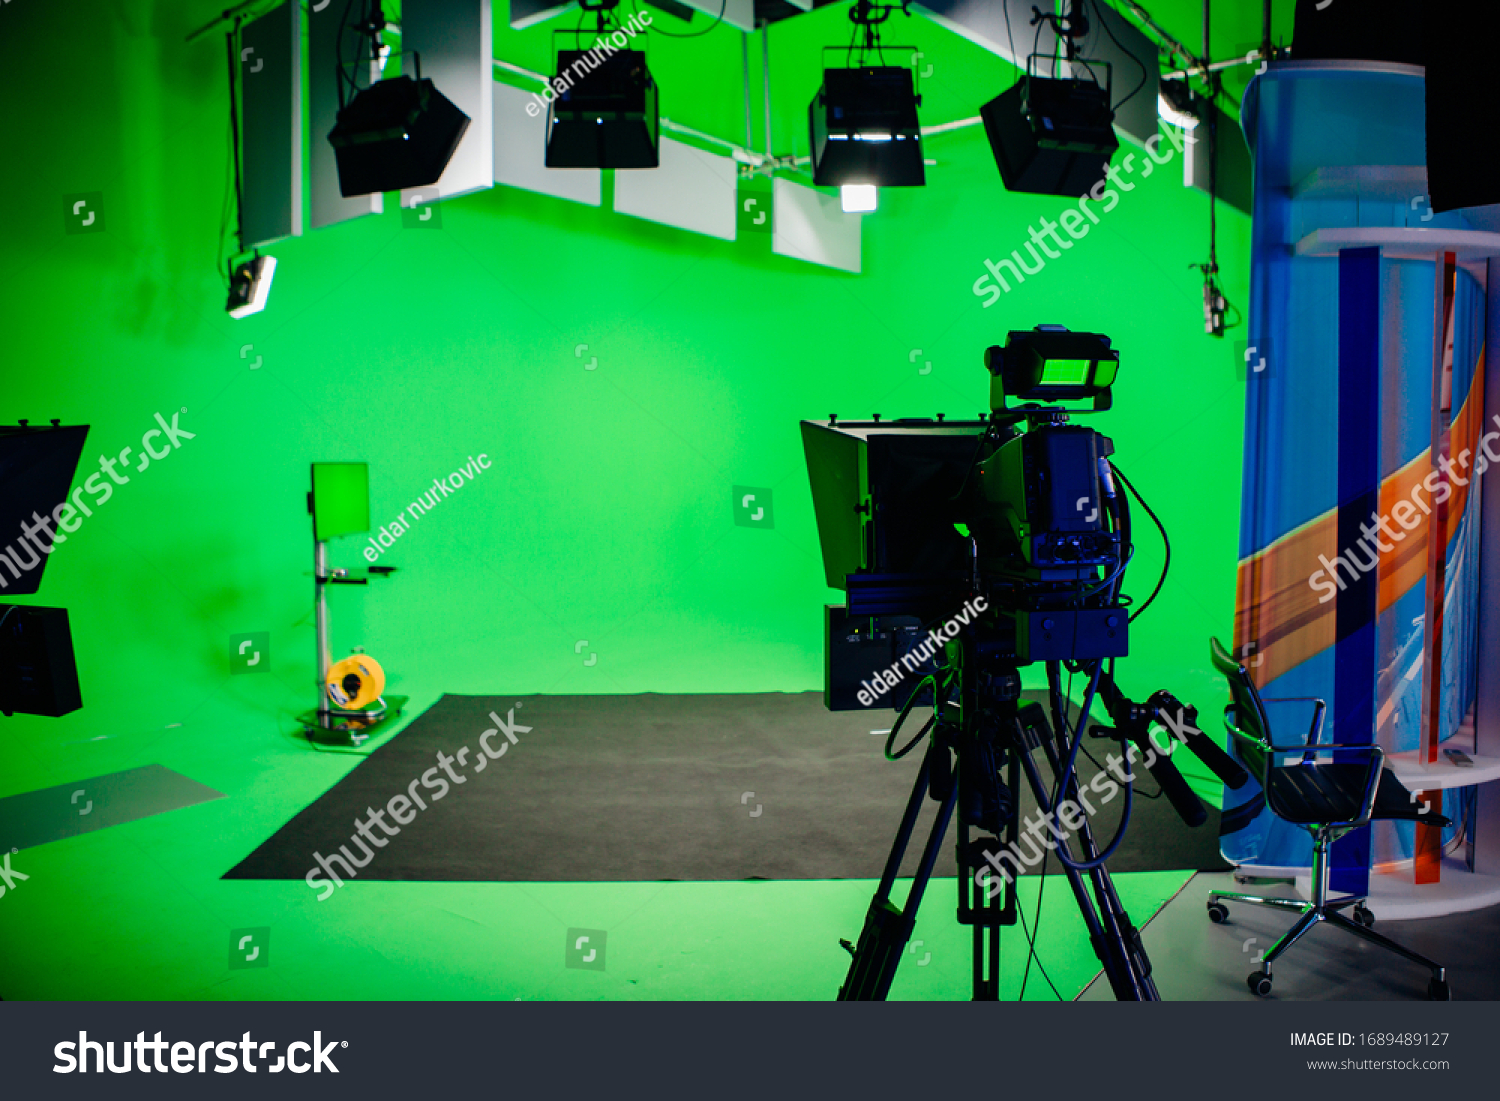 TV Studio recording show.Reportage shooting.TV NEWS program studio with video camera lens and lights.Positioned stage big professional broadcasting camera with headphones.Green key studio #1689489127